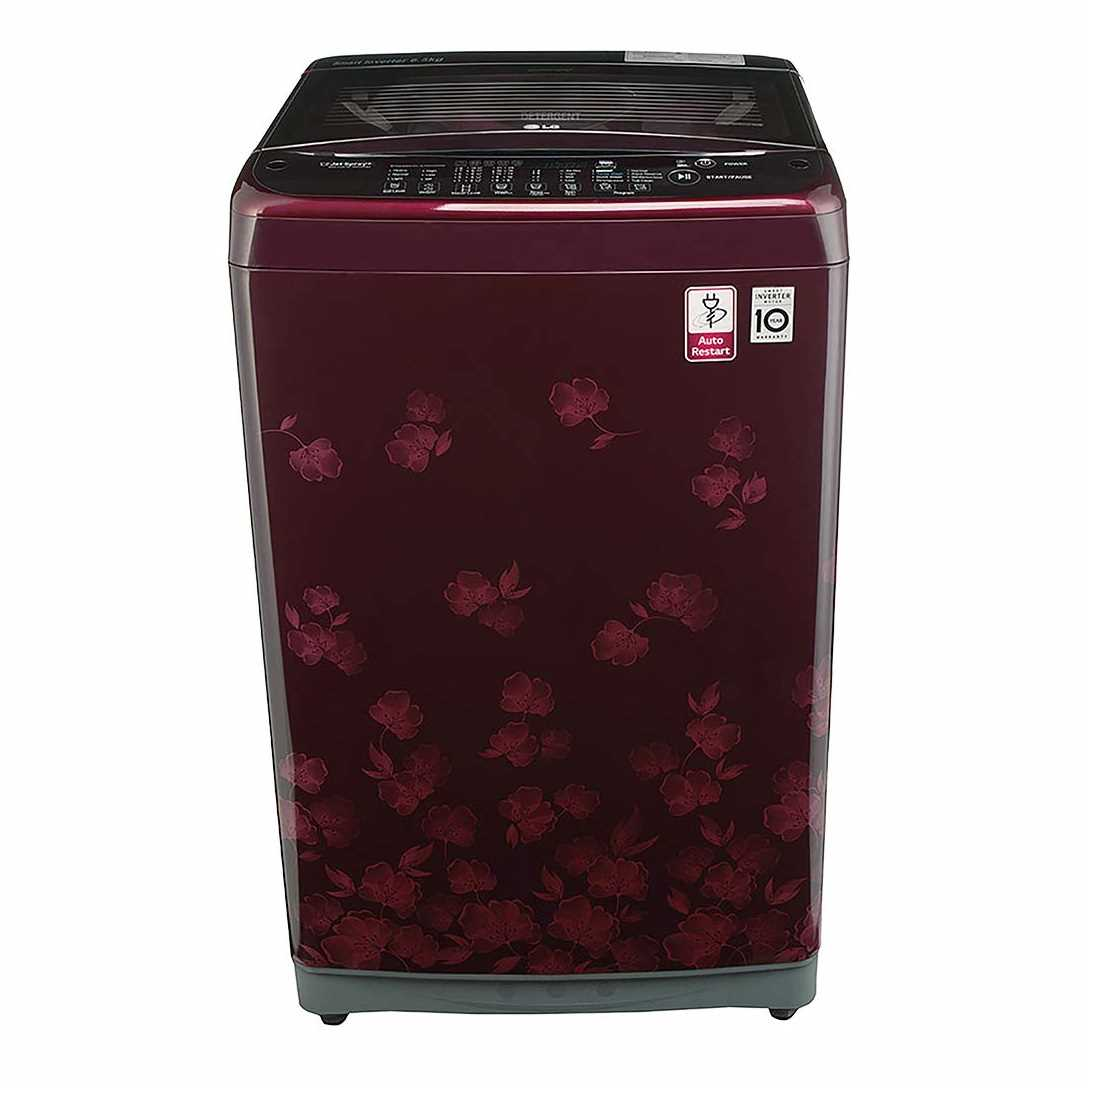 LG T7577NDDL8 6.5 Kg Fully Automatic Top Loading Washing Machine